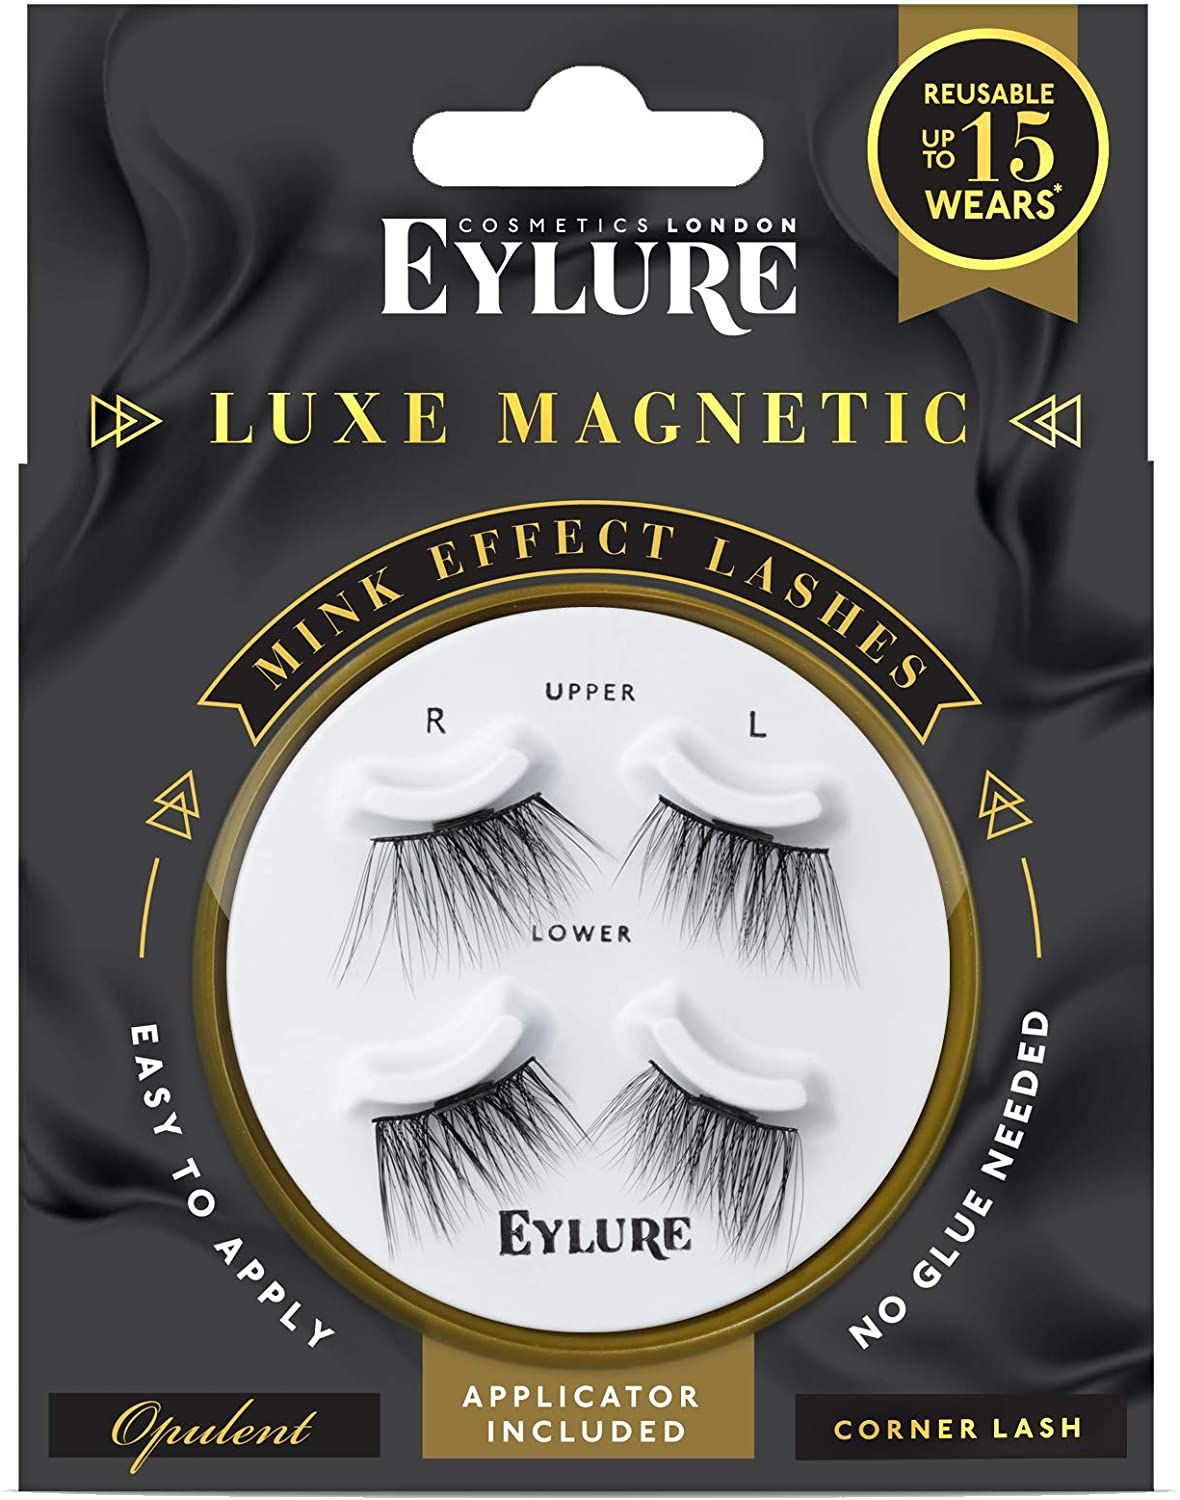 Eylure Luxe Magnetic Mink Effect Lashes - Opulent Effect